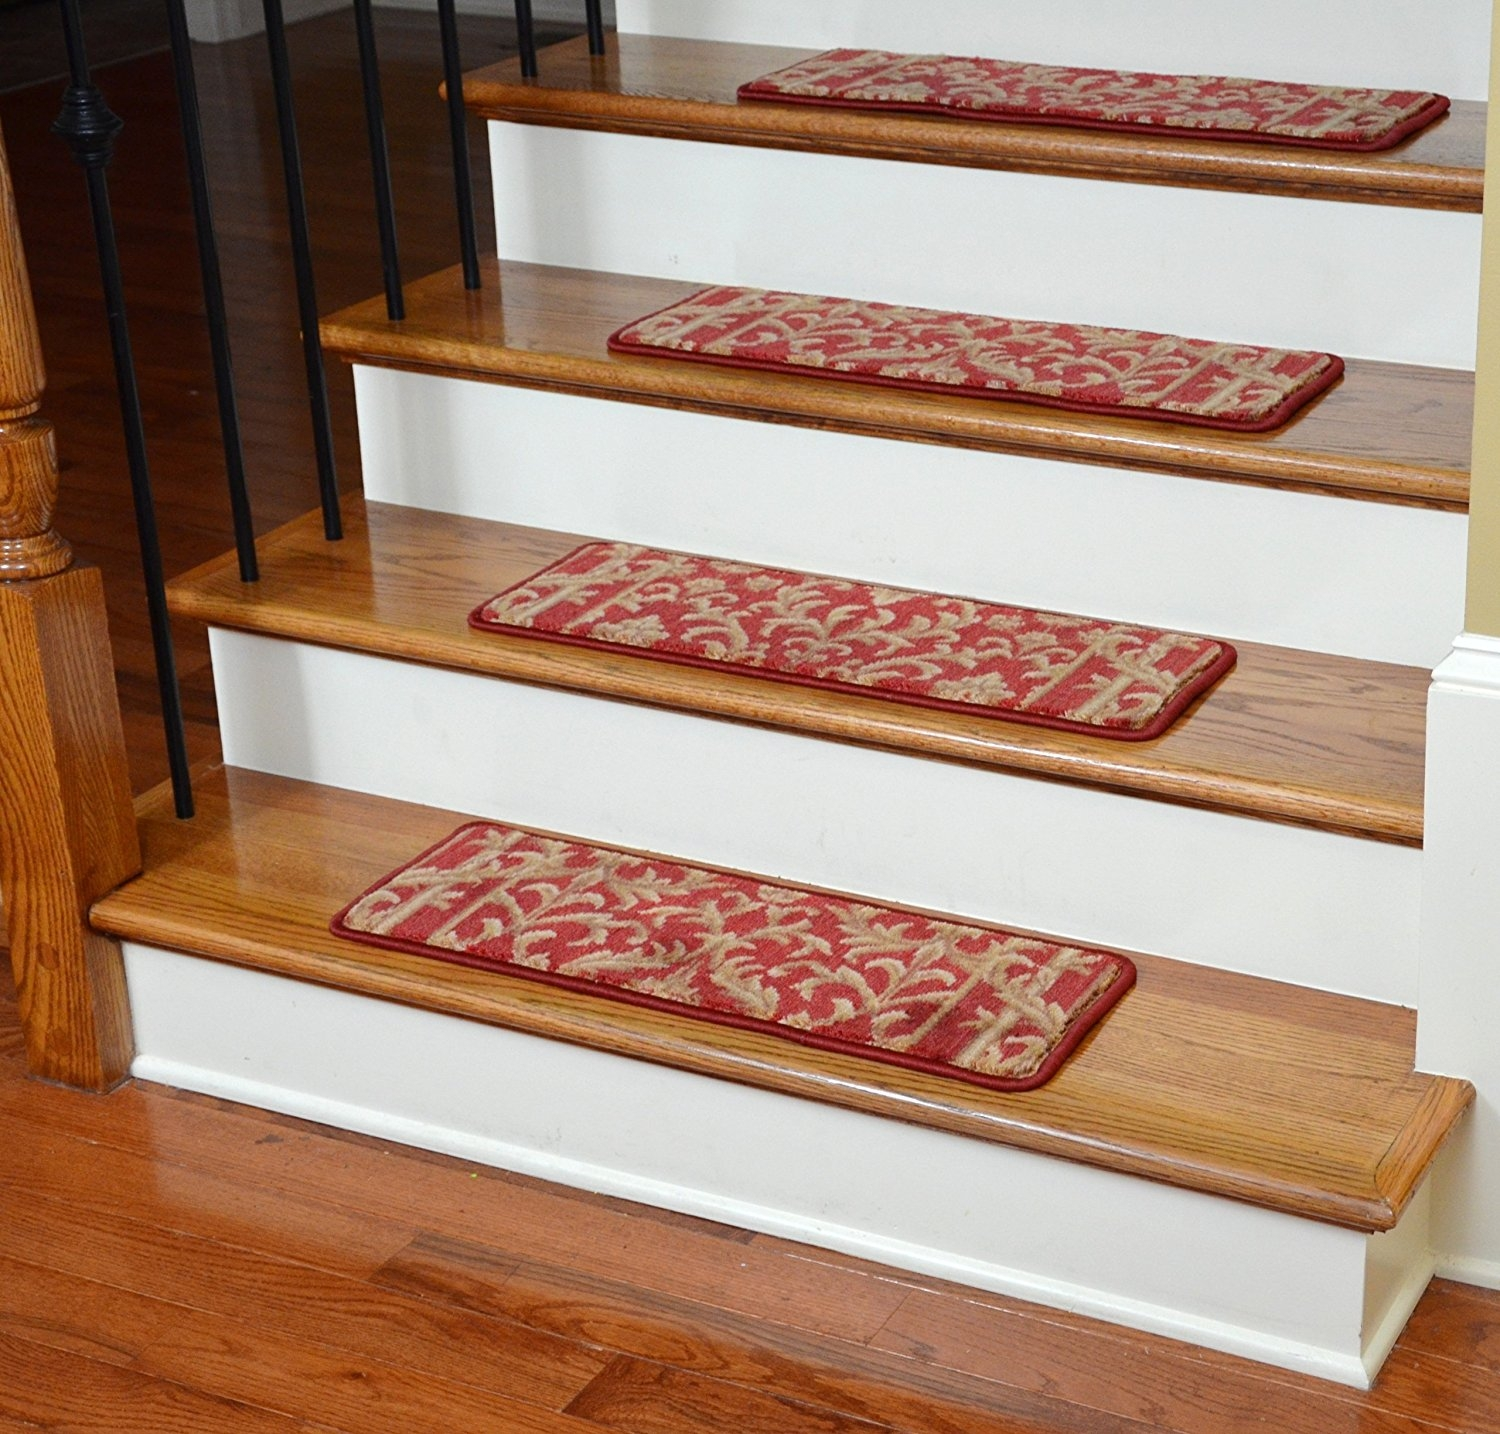 Flooring Pretty Stair Treads Carpet For Stair Decoration Idea Throughout Wool Stair Rug Treads (View 8 of 20)